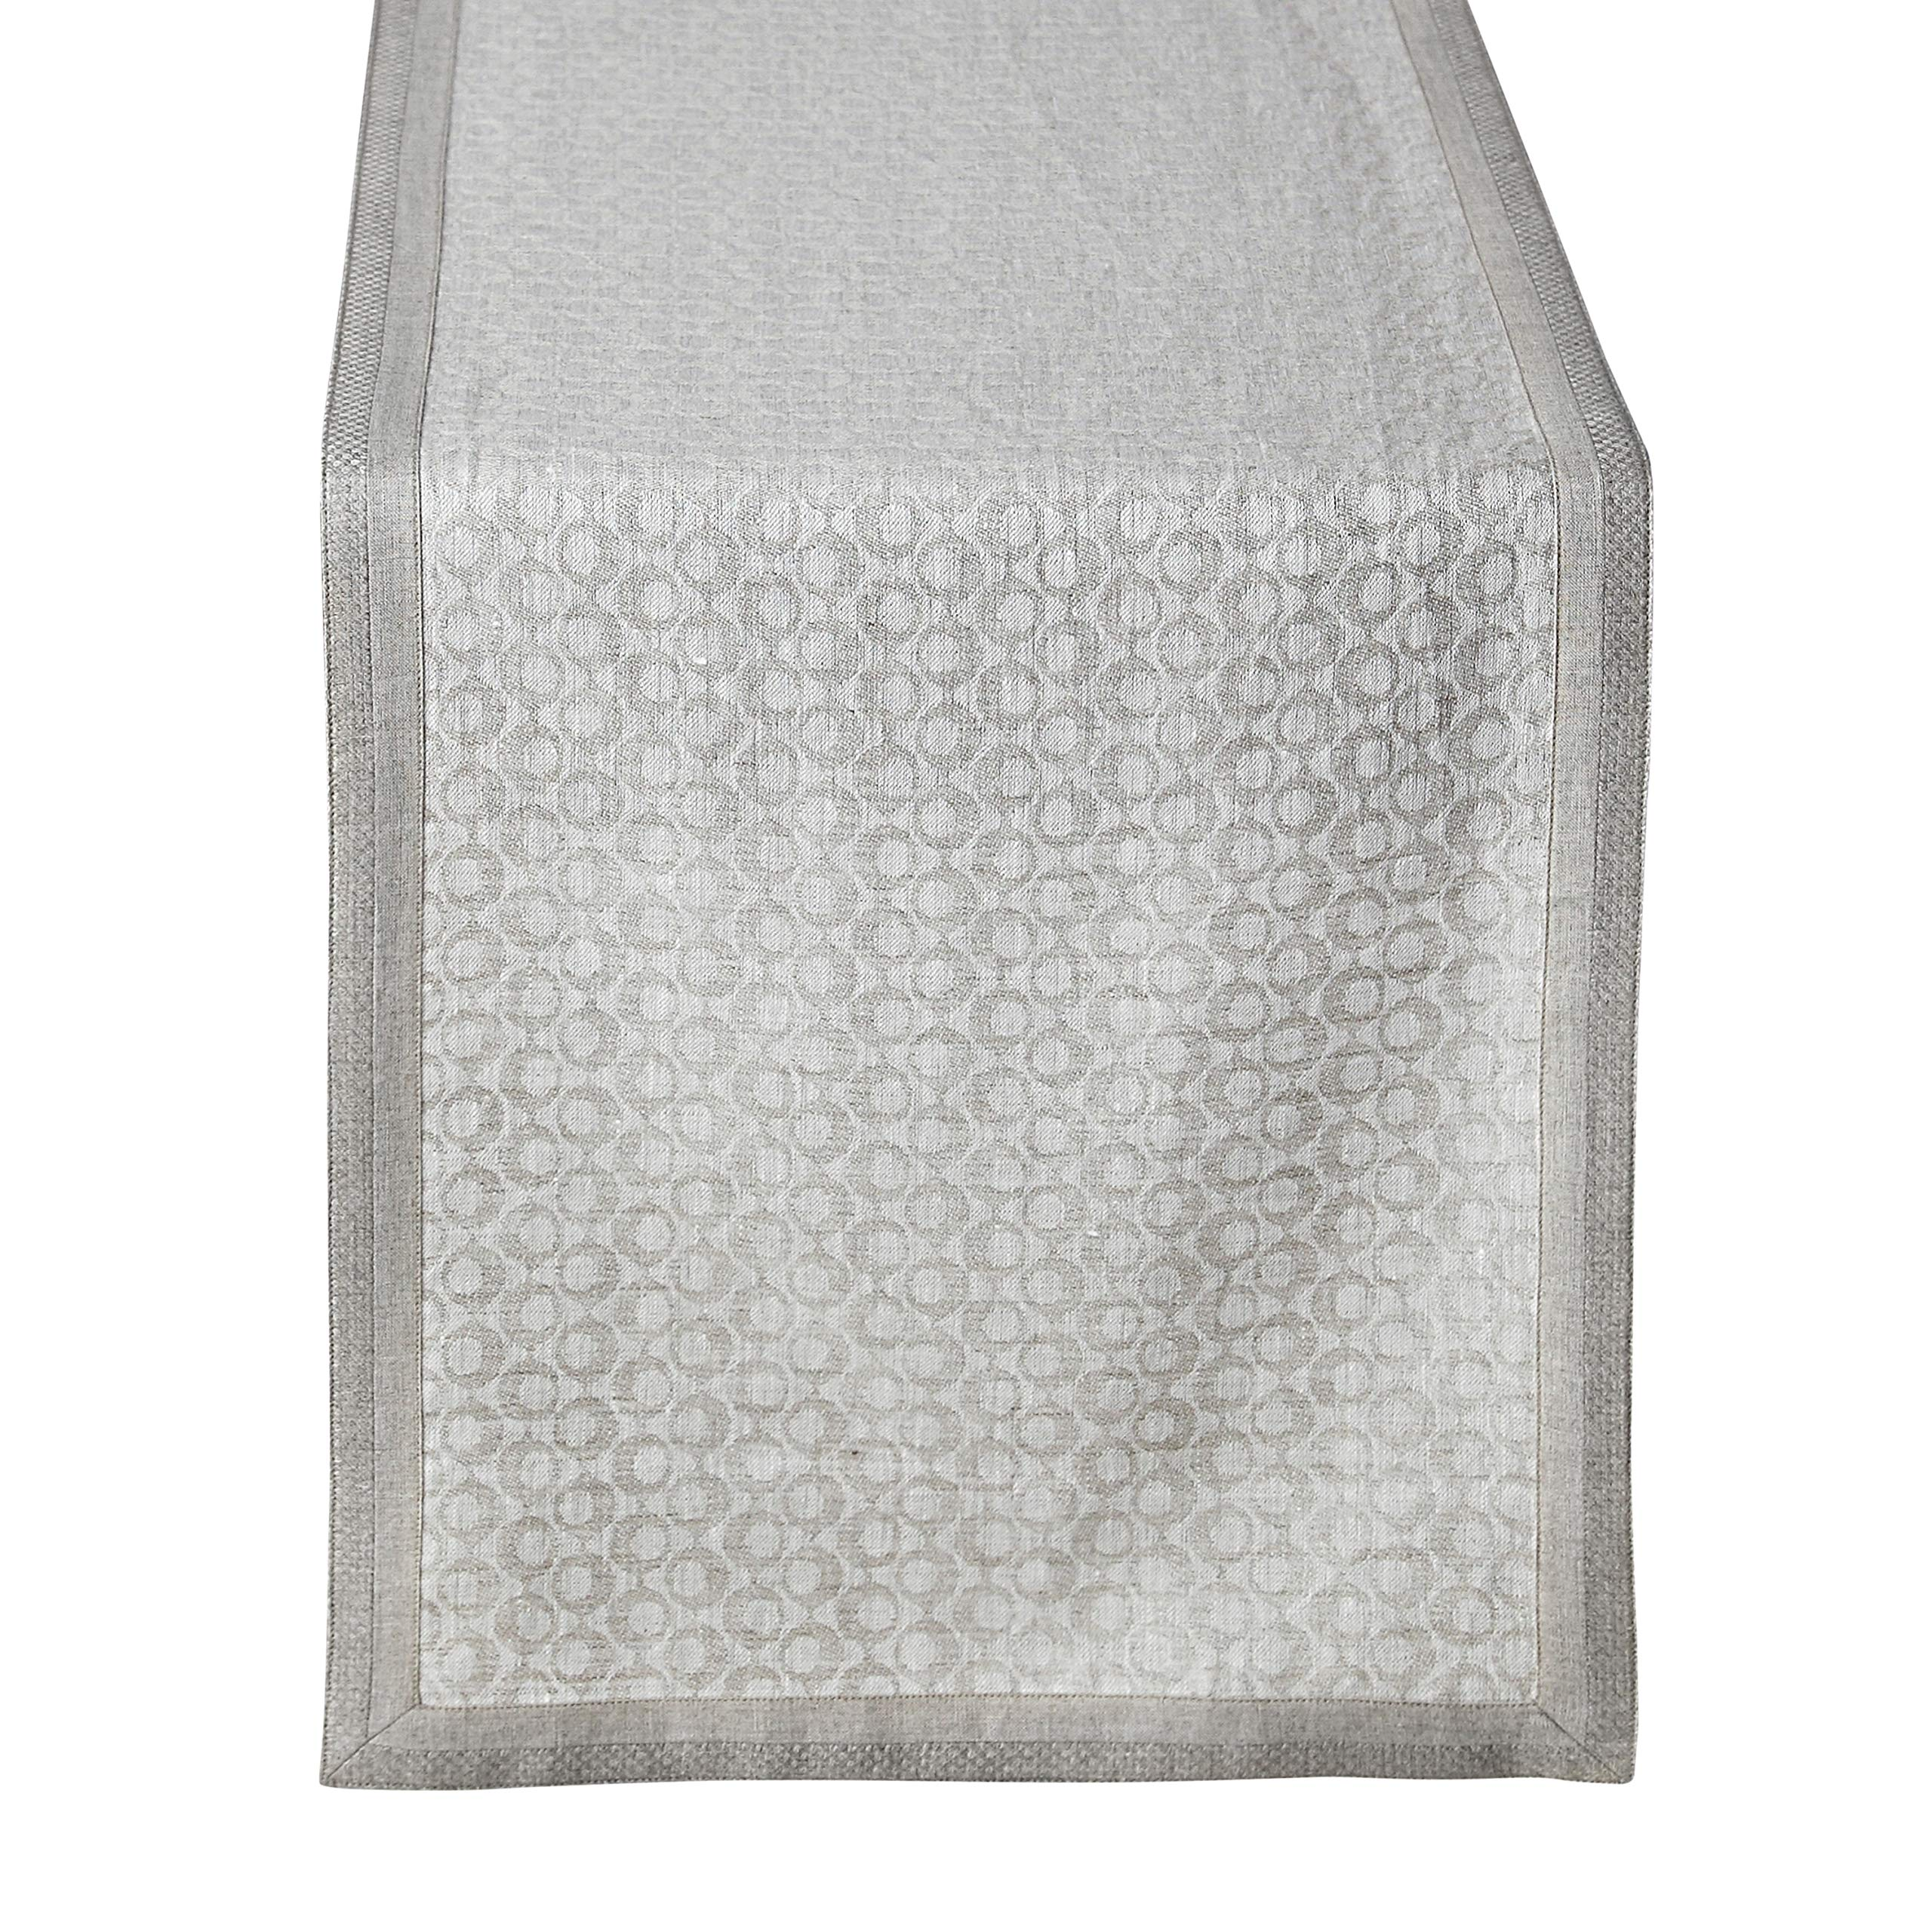 Solino Home 100% Pure Linen Table Runner Venus - 14 x 36 Inch Jacquard Table Runner - Natural Fabric, Handcrafted from European Flax Rectangular Table Runner